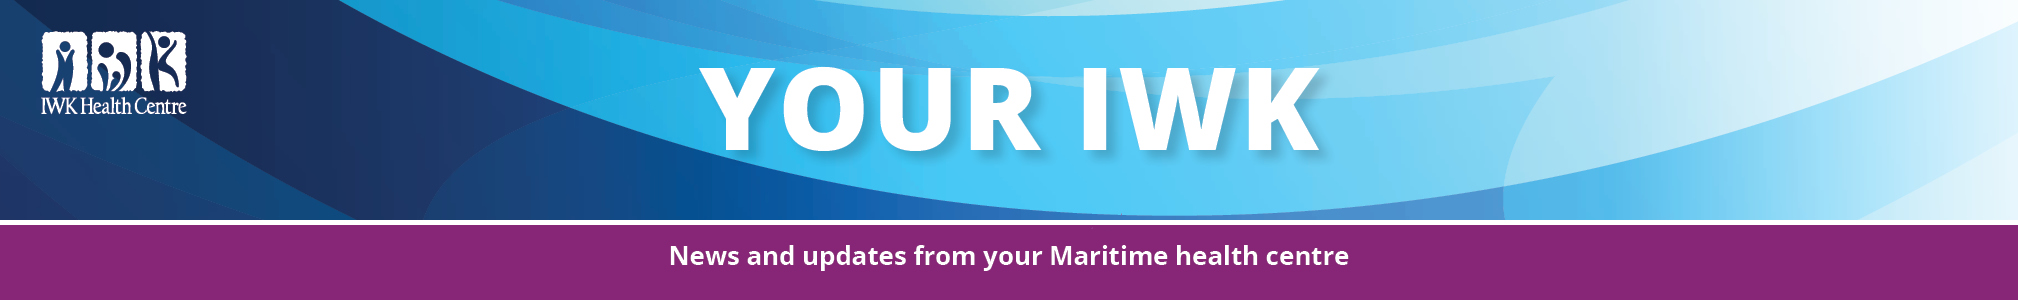 IWK Health Centre | Your IWK: News & updates from your Maritime health centre